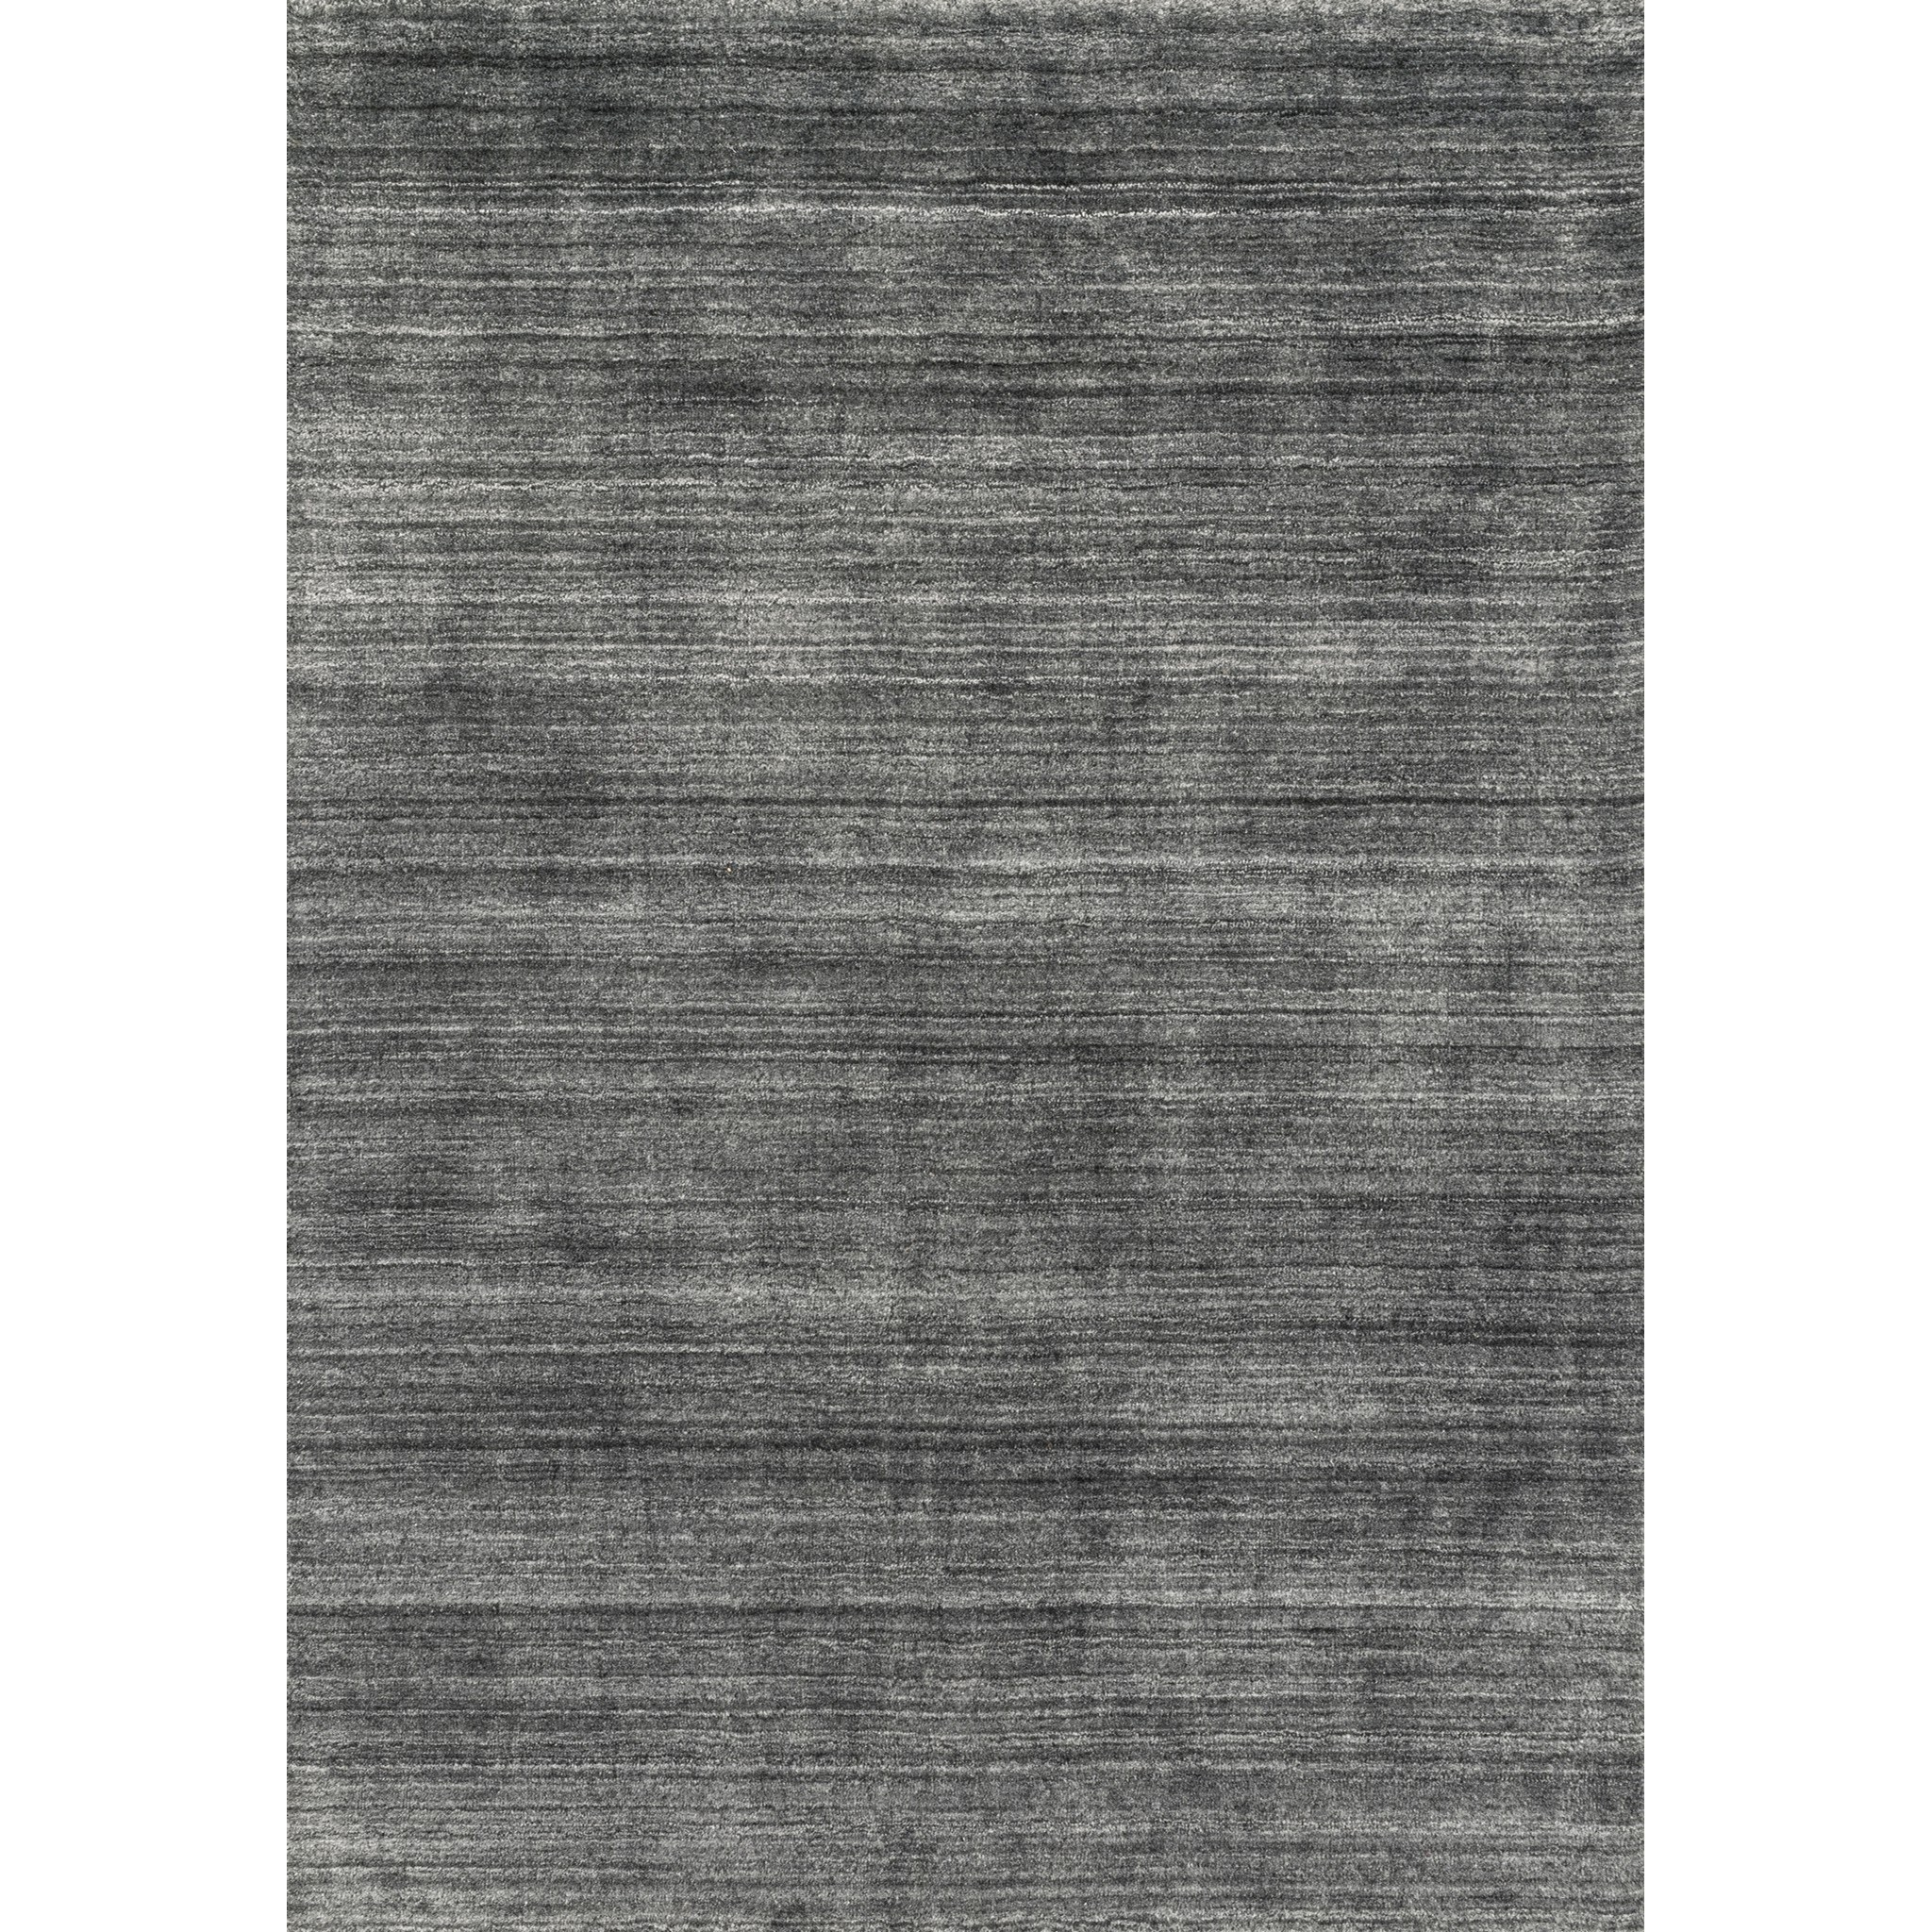 "Barkley 5'-0"" x 7'-6"" Area Rug by Loloi Rugs at Virginia Furniture Market"